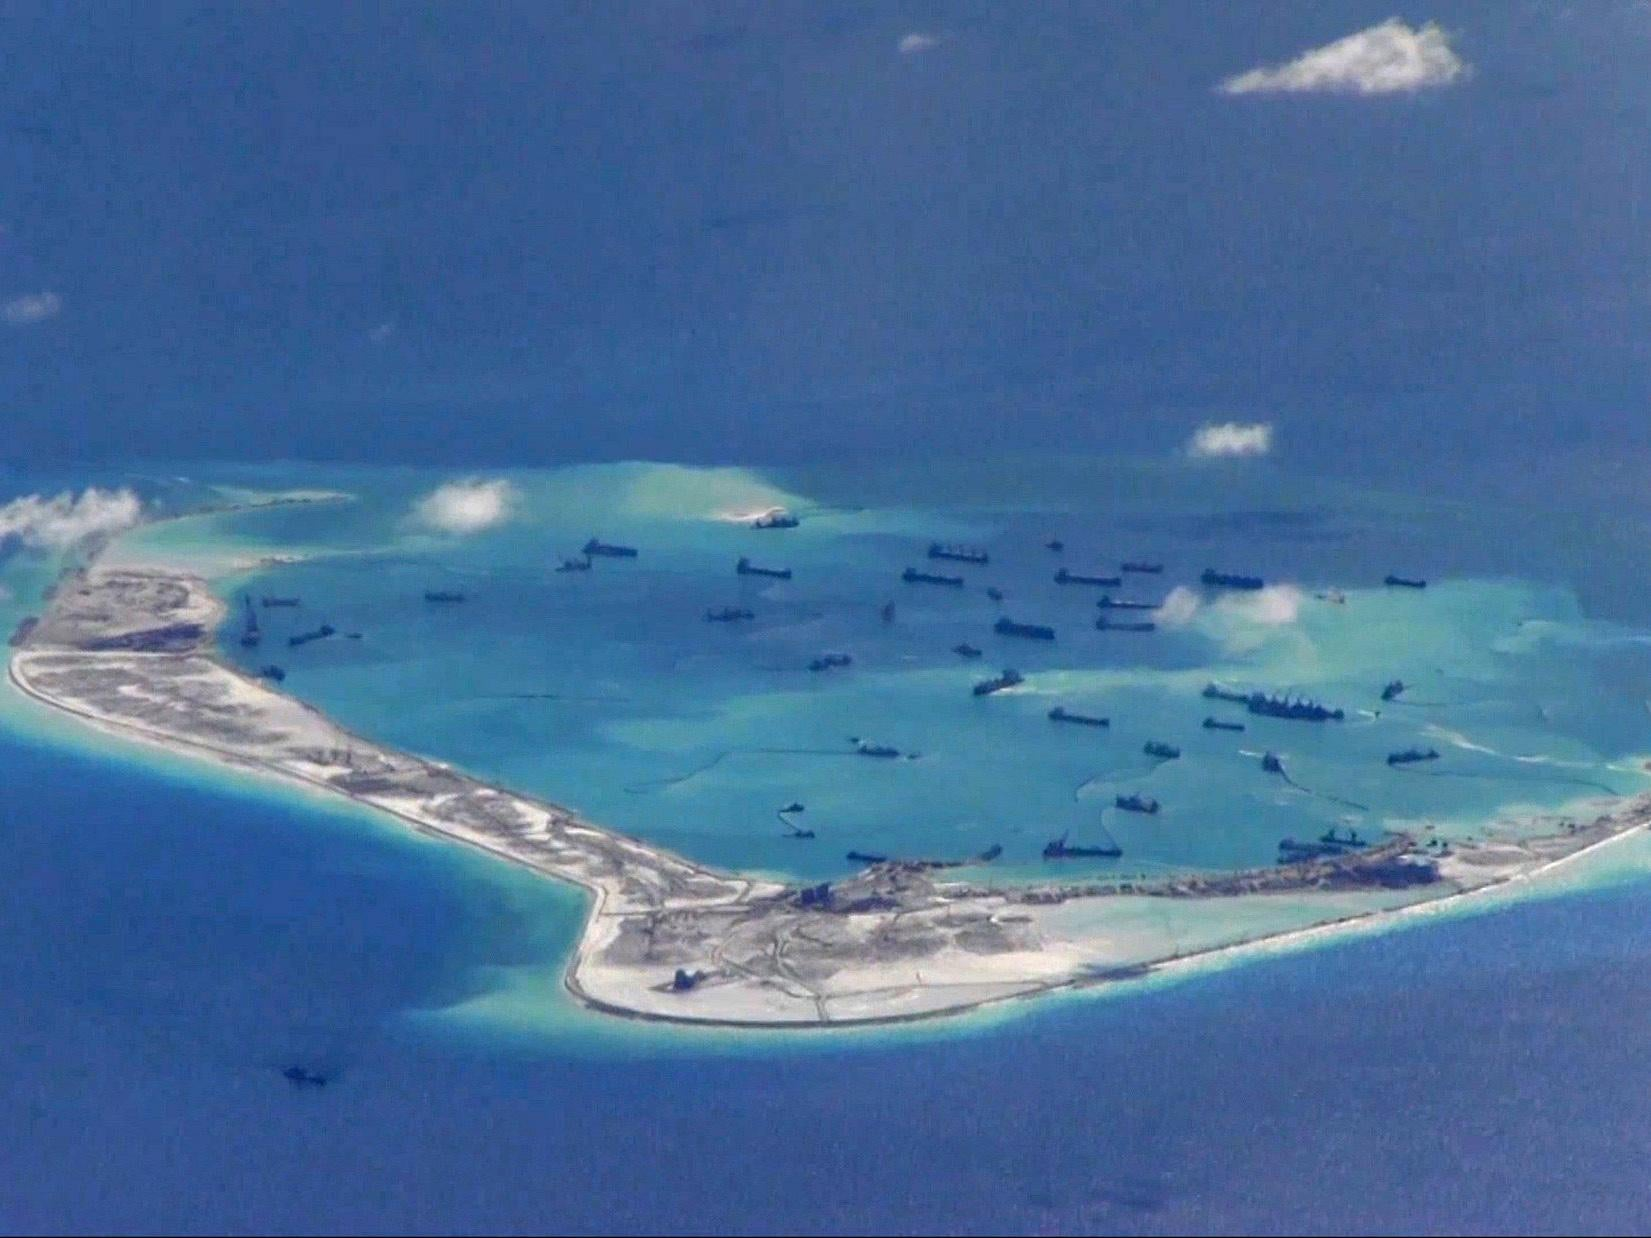 Beijing fury after US sails near to disputed South Sea isles